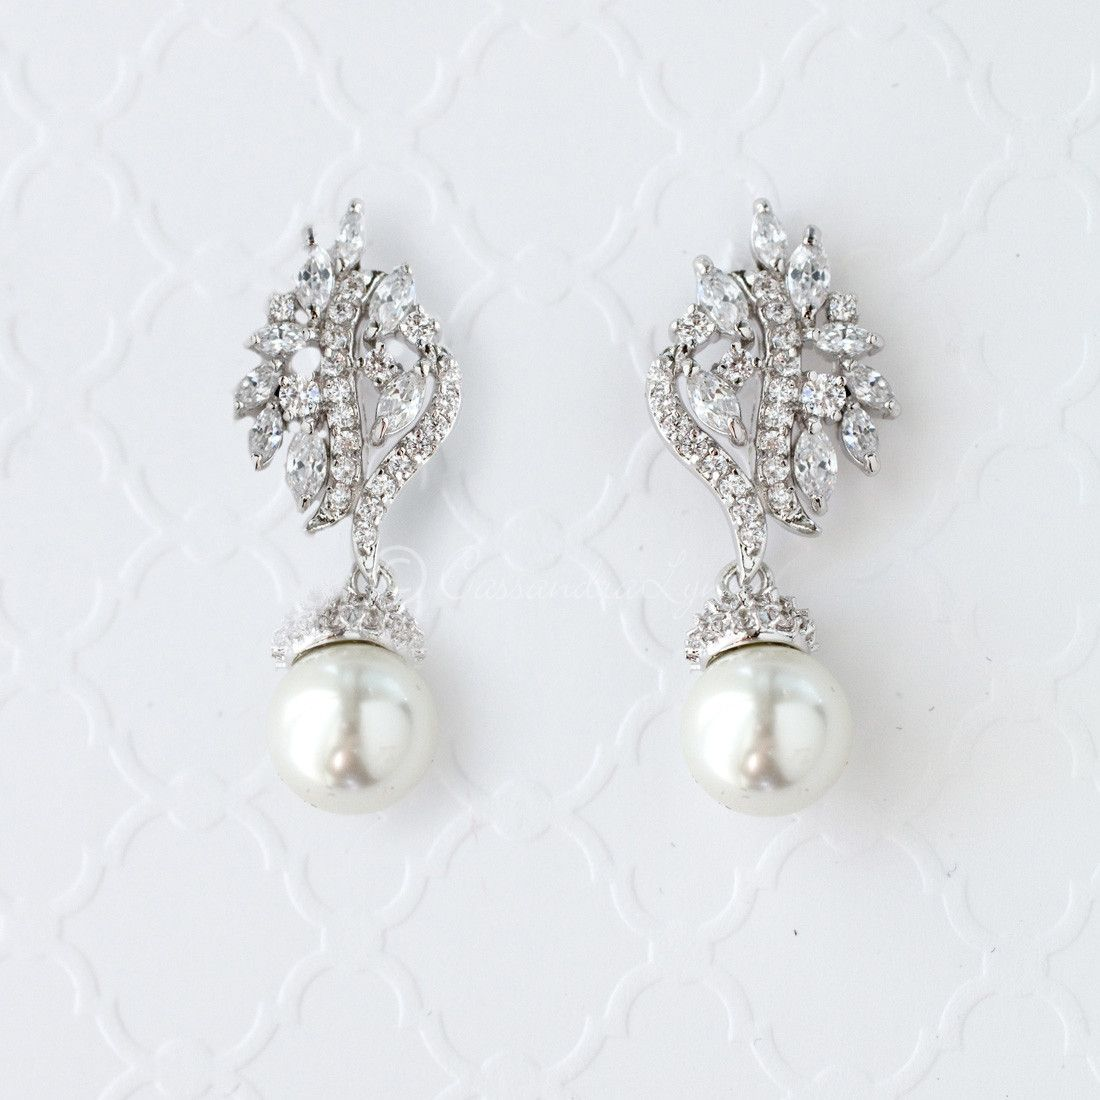 cubic zirconia studs gold plated cubic zirconia dangle earrings bridal pearl earrings pearl and flower earrings Bow classic pearl studs